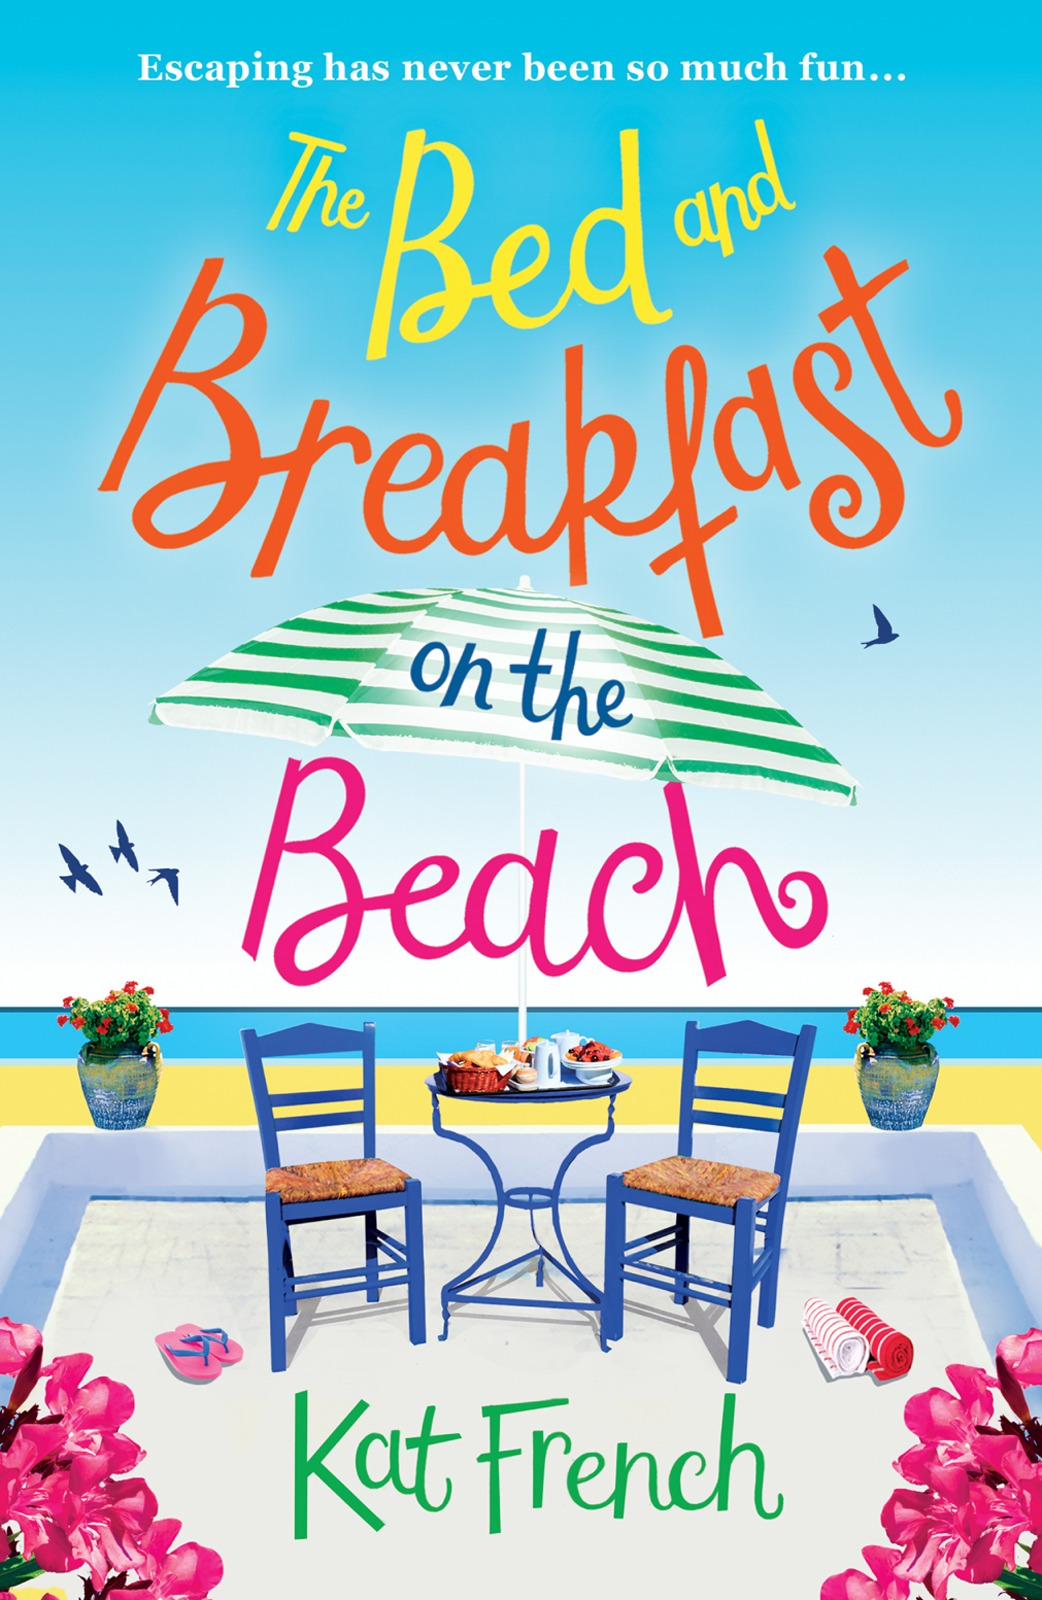 The Bed and Breakfast on the Beach: A gorgeous feel-good read from the bestselling author of One Day in December